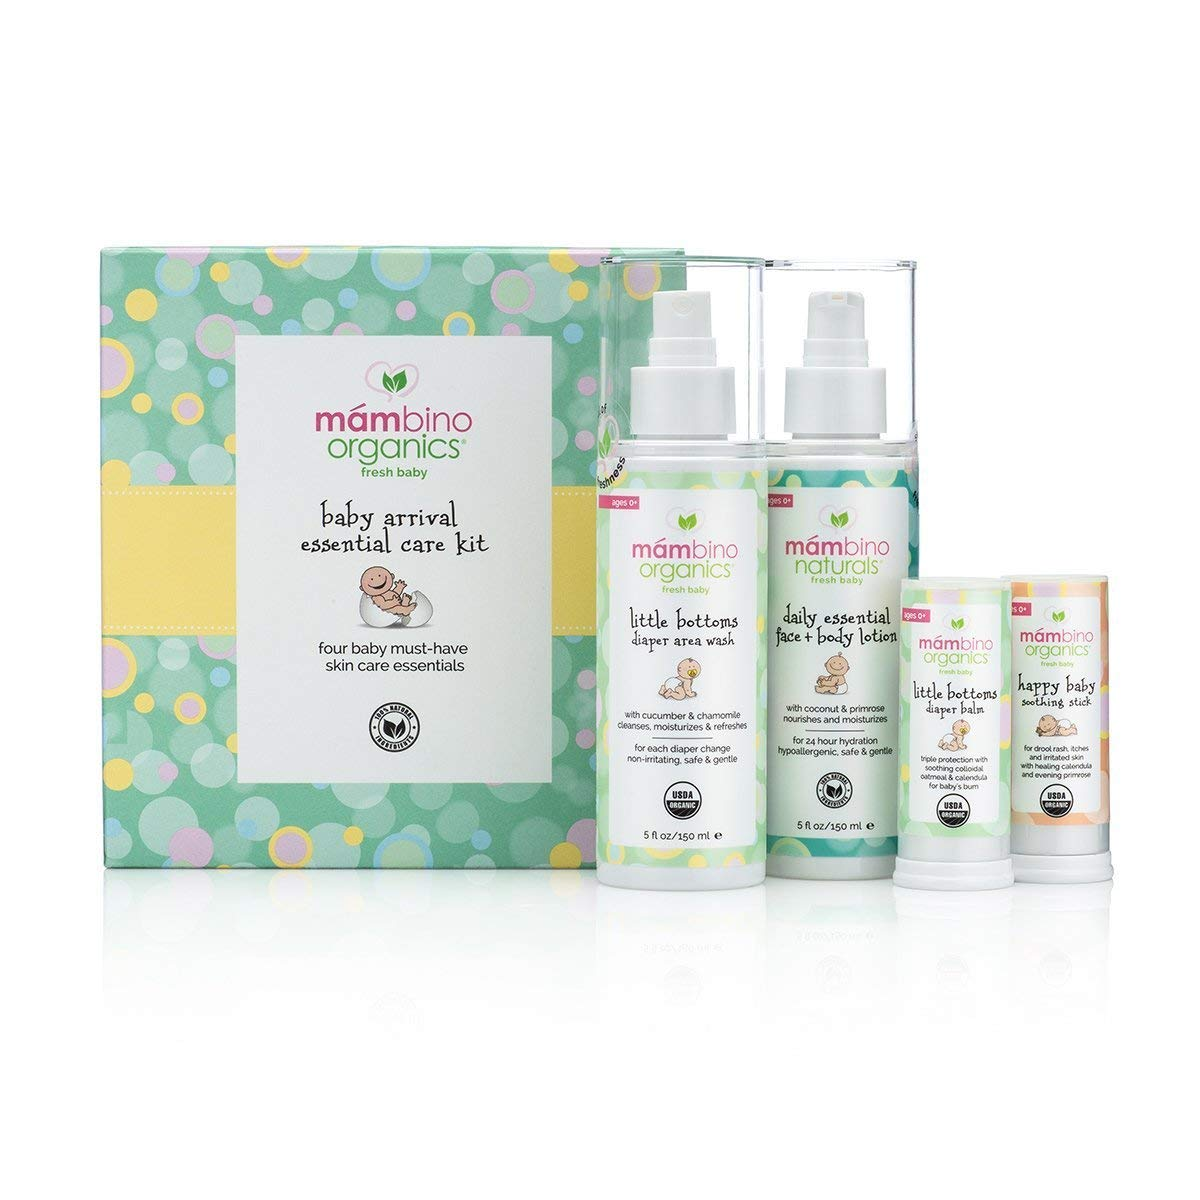 Mambino Organics Baby Arrival Kit Essential Care Kit, Little Bottoms Diaper Balm + Happy Baby Soothing Stick + Little Bottoms Diaper Area Wash + Daily Essential Face And Body Lotion, 10 Fluid Ounces